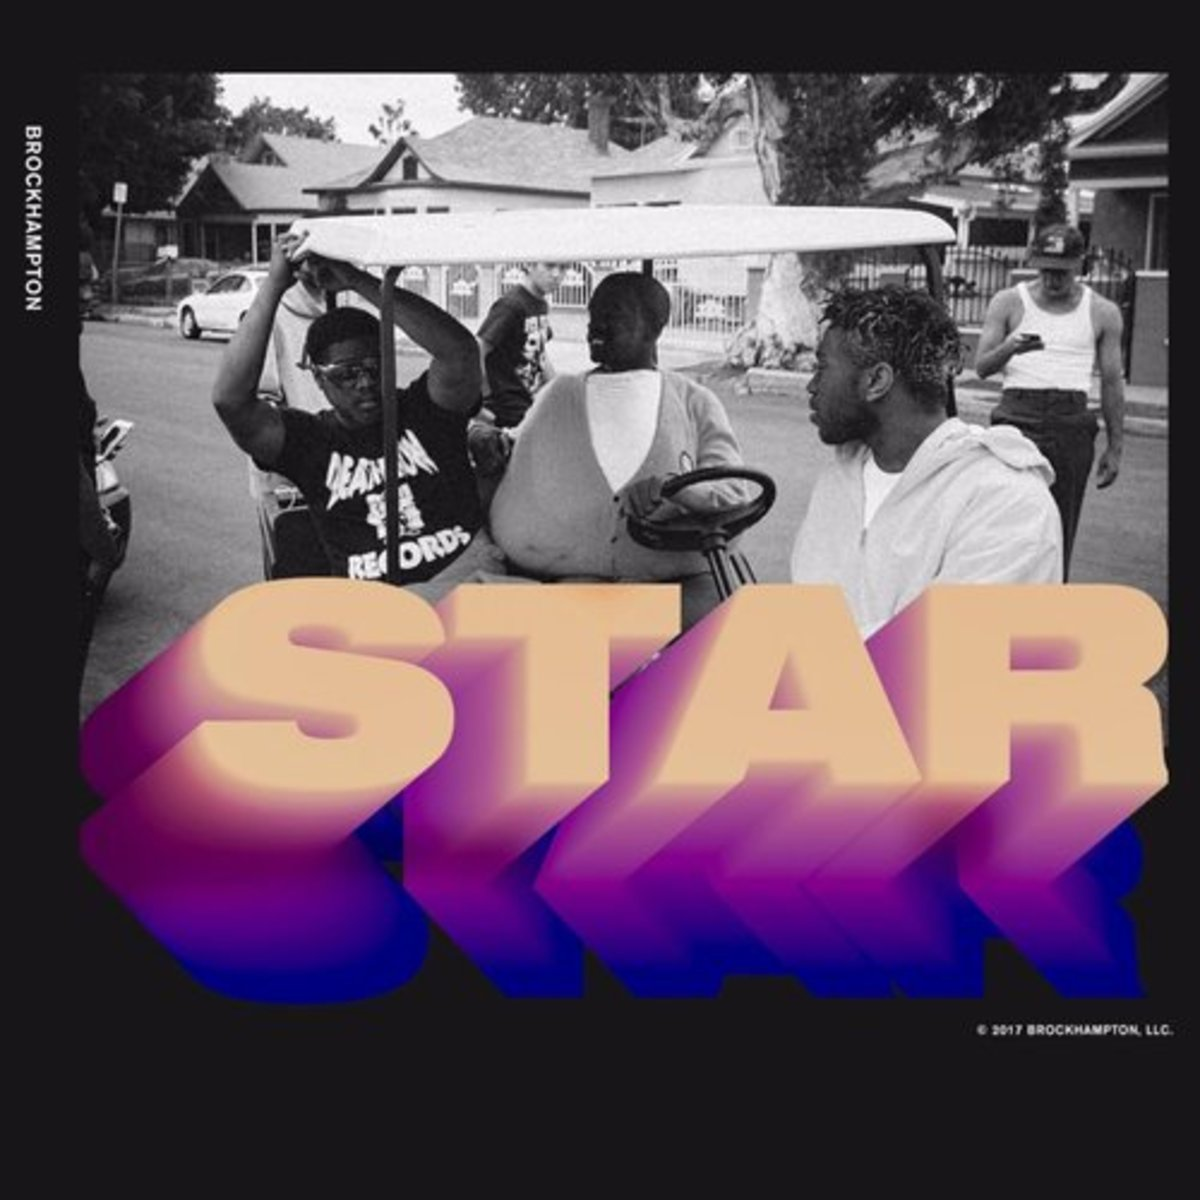 brockhampton-star.jpg